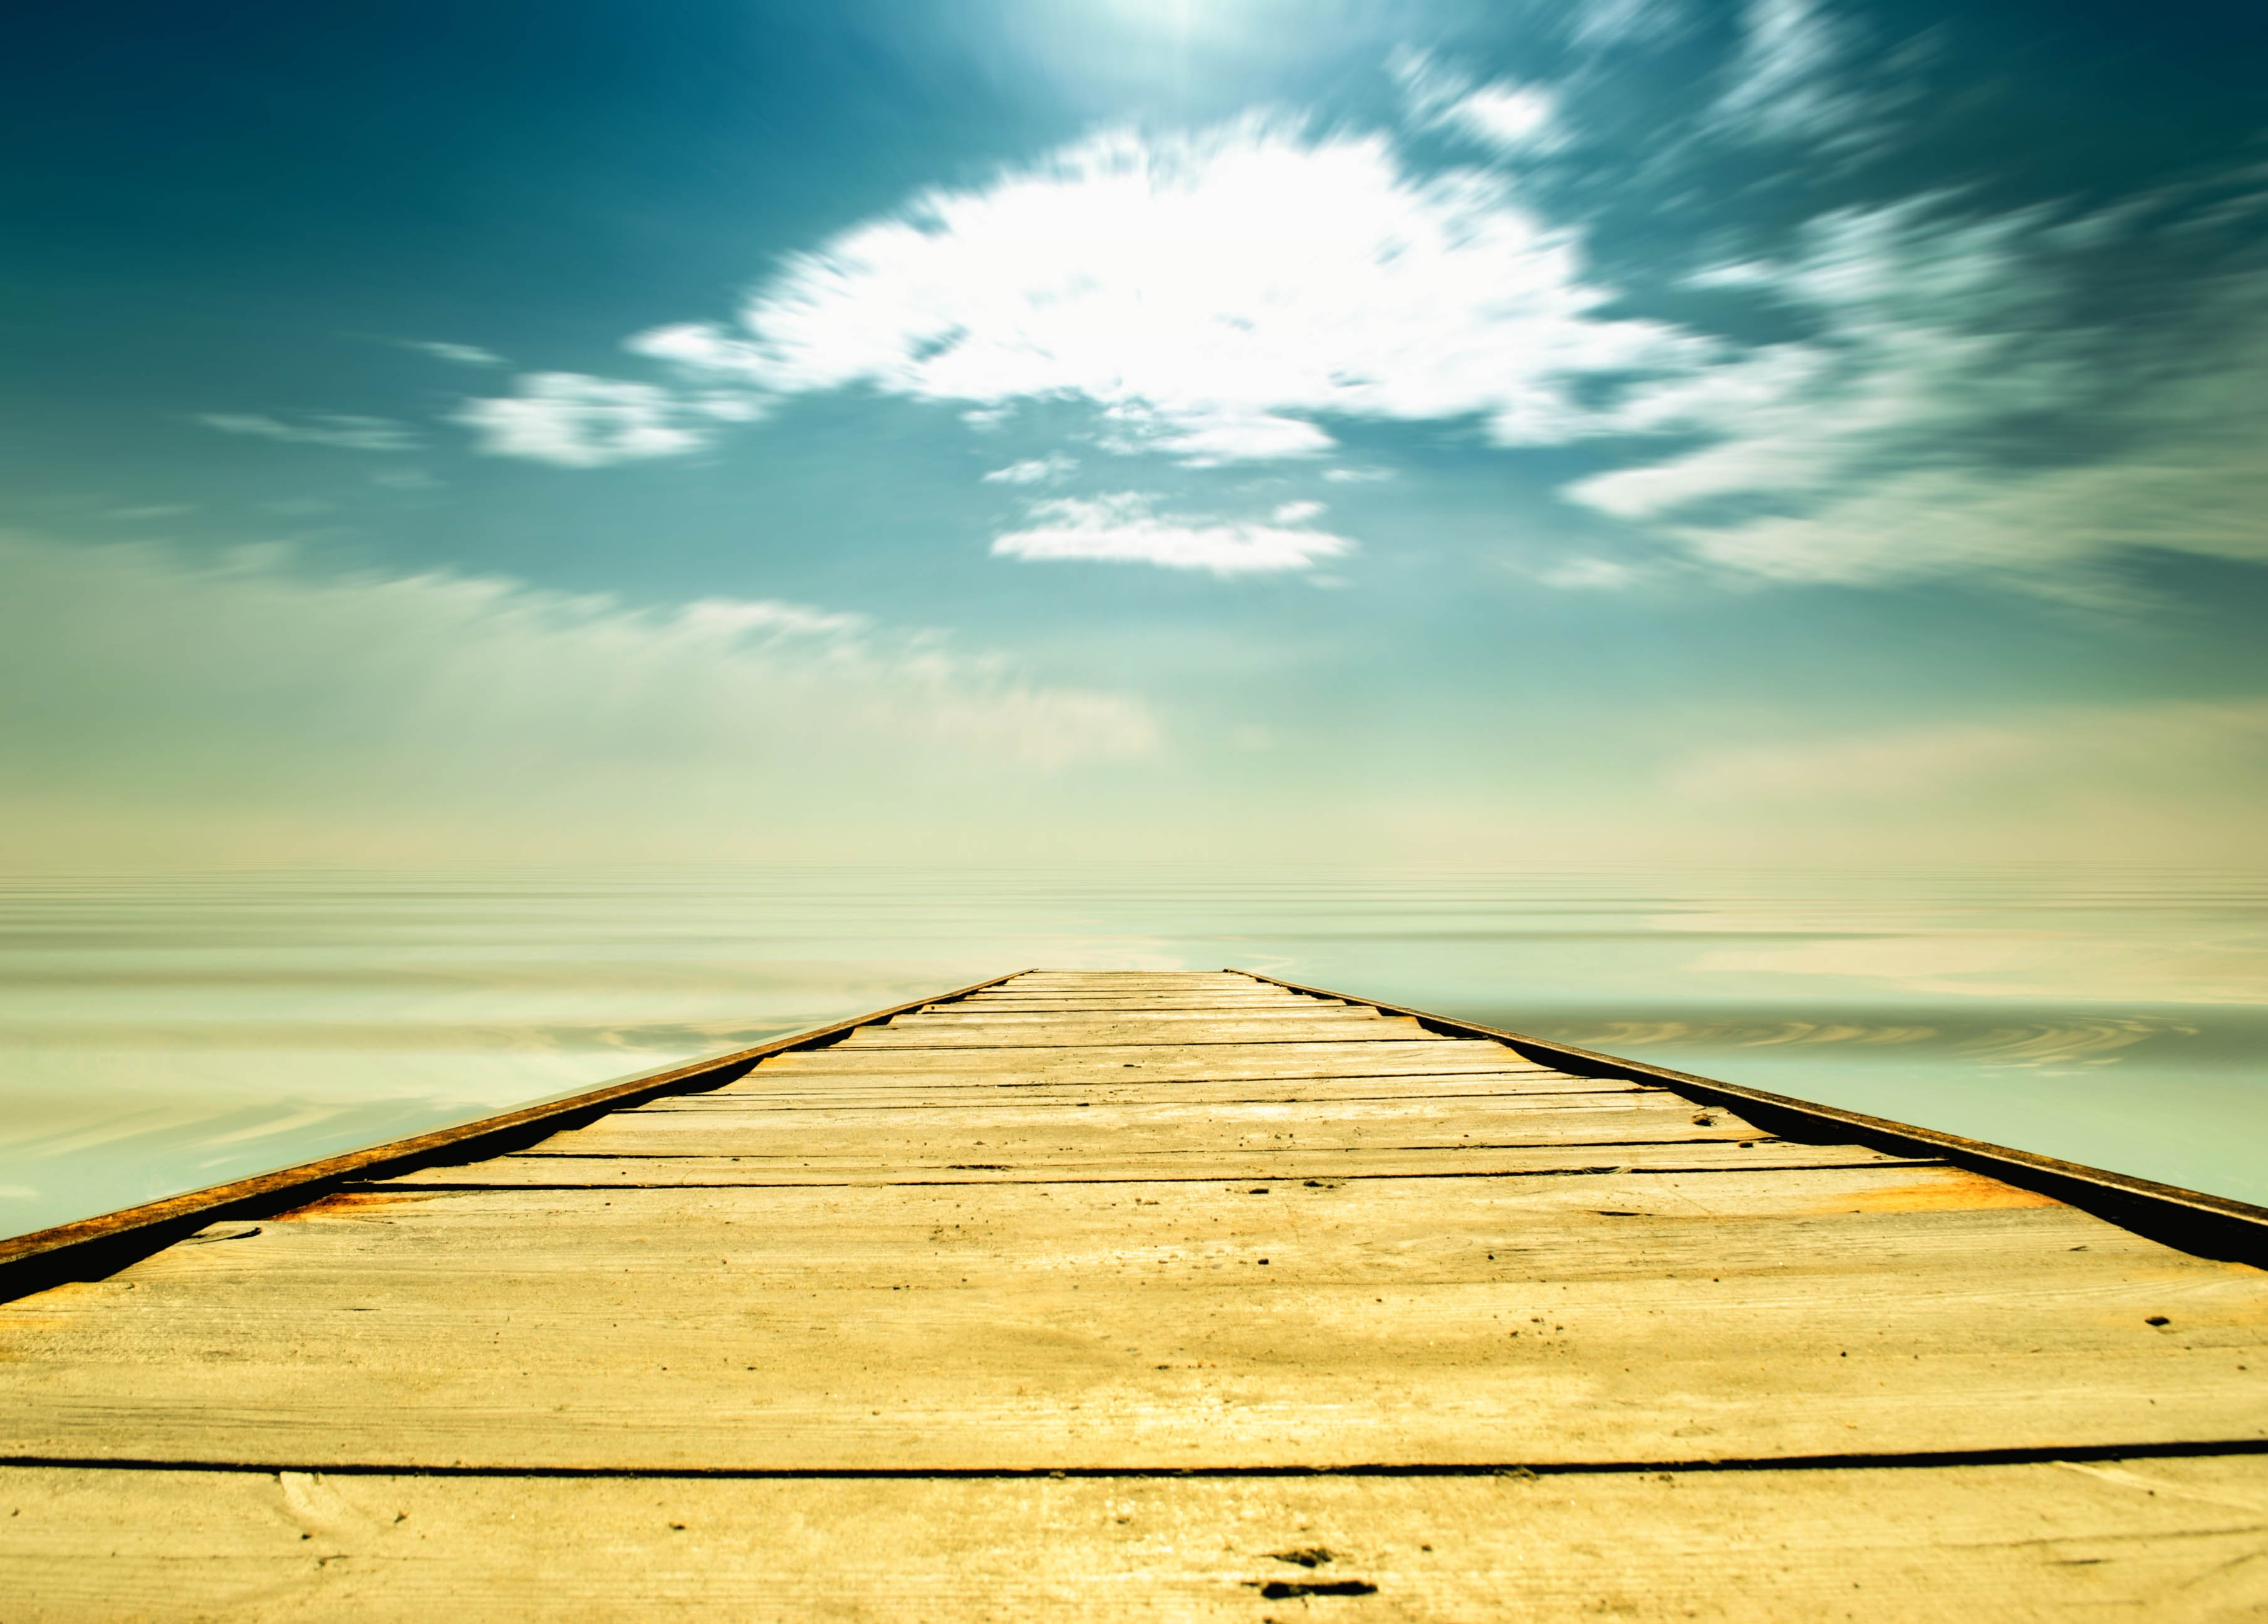 139379 download wallpaper Nature, Track, Sky, Pier, Planks, Board, Way, Path, Choice, Straight, Straight Line screensavers and pictures for free